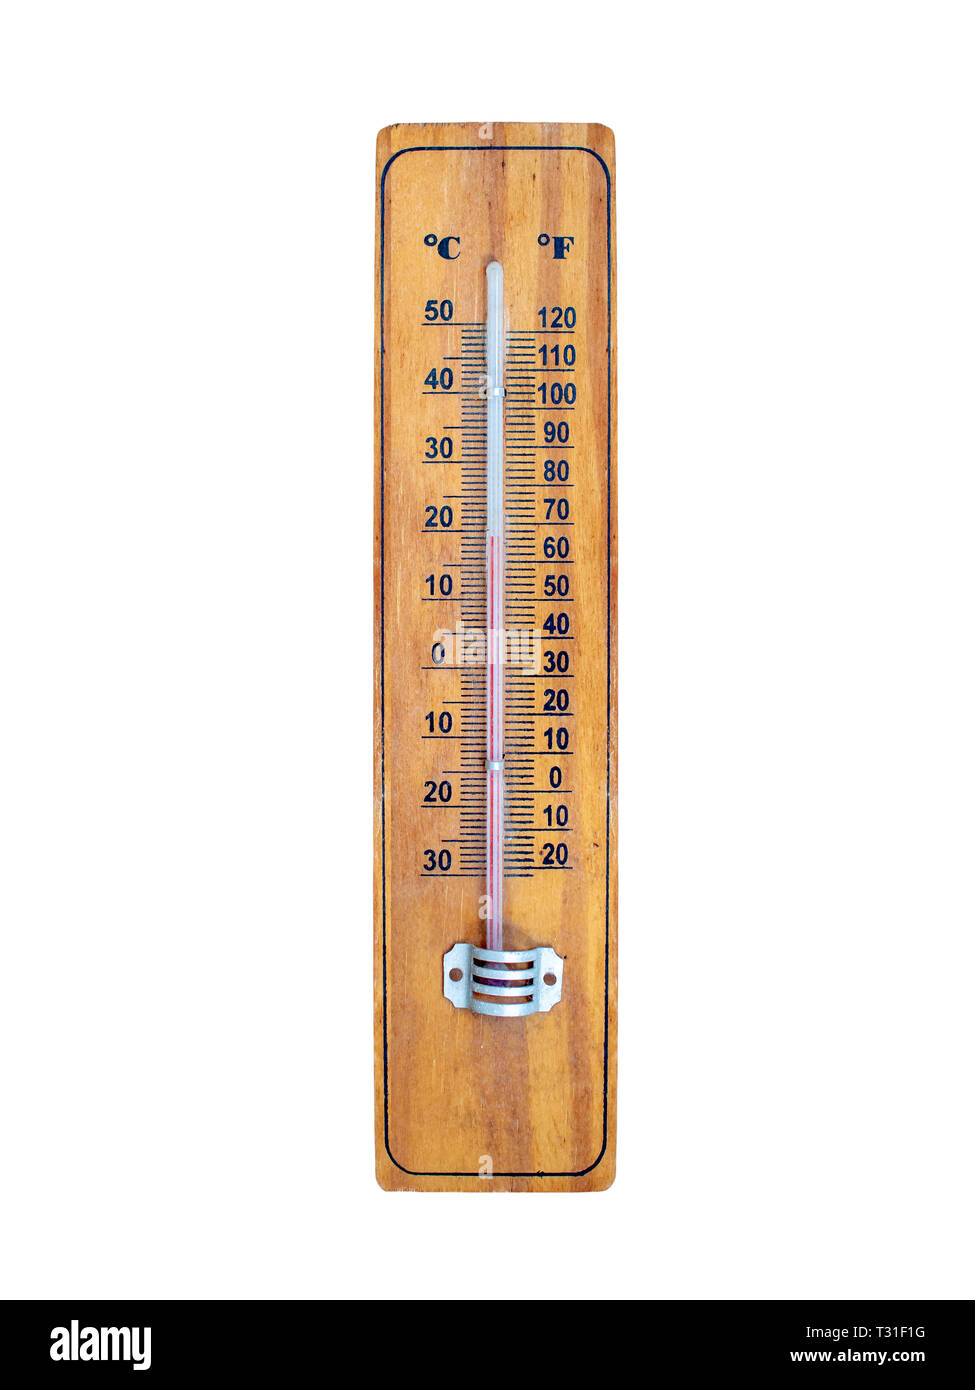 Home Garden Traditional Wooden Thermometer Large Centigrade /& Fahrenheit Scales